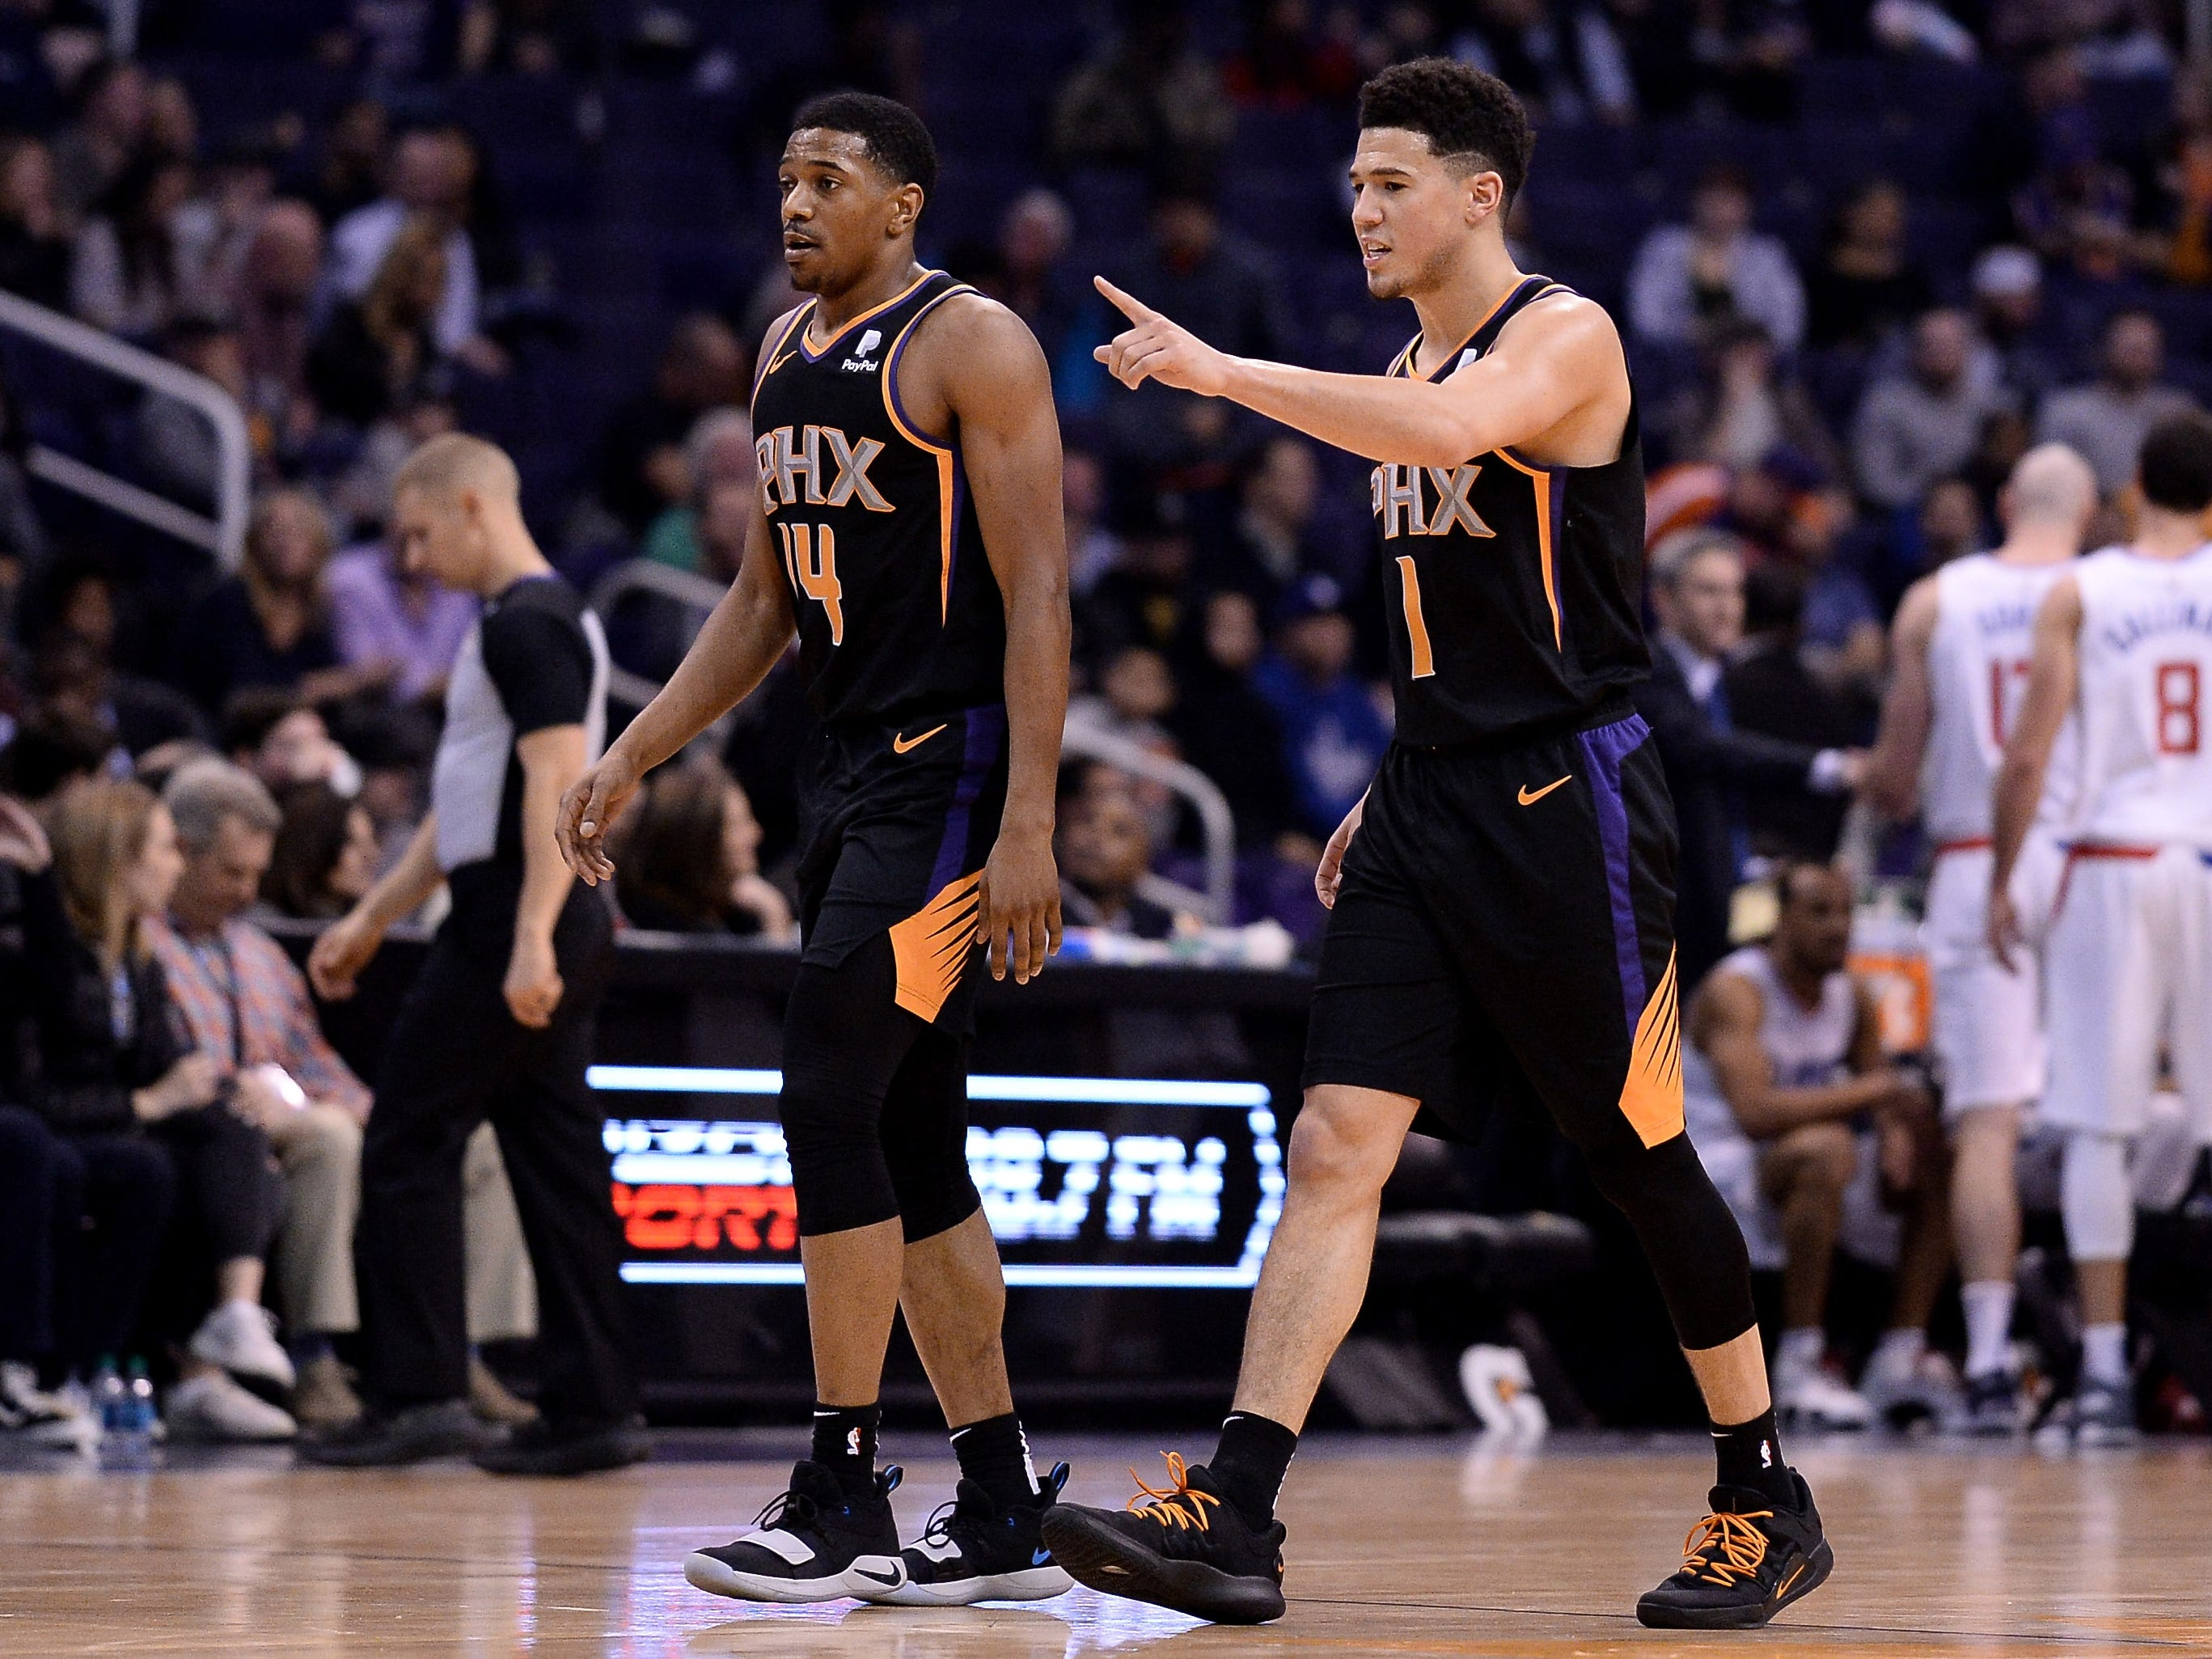 Jan 4, 2019; Phoenix, AZ, USA; Phoenix Suns guard De'Anthony Melton (14) and guard Devin Booker (1) react during a time out in the first half against the LA Clippers at Talking Stick Resort Arena. Mandatory Credit: Jennifer Stewart-USA TODAY Sports